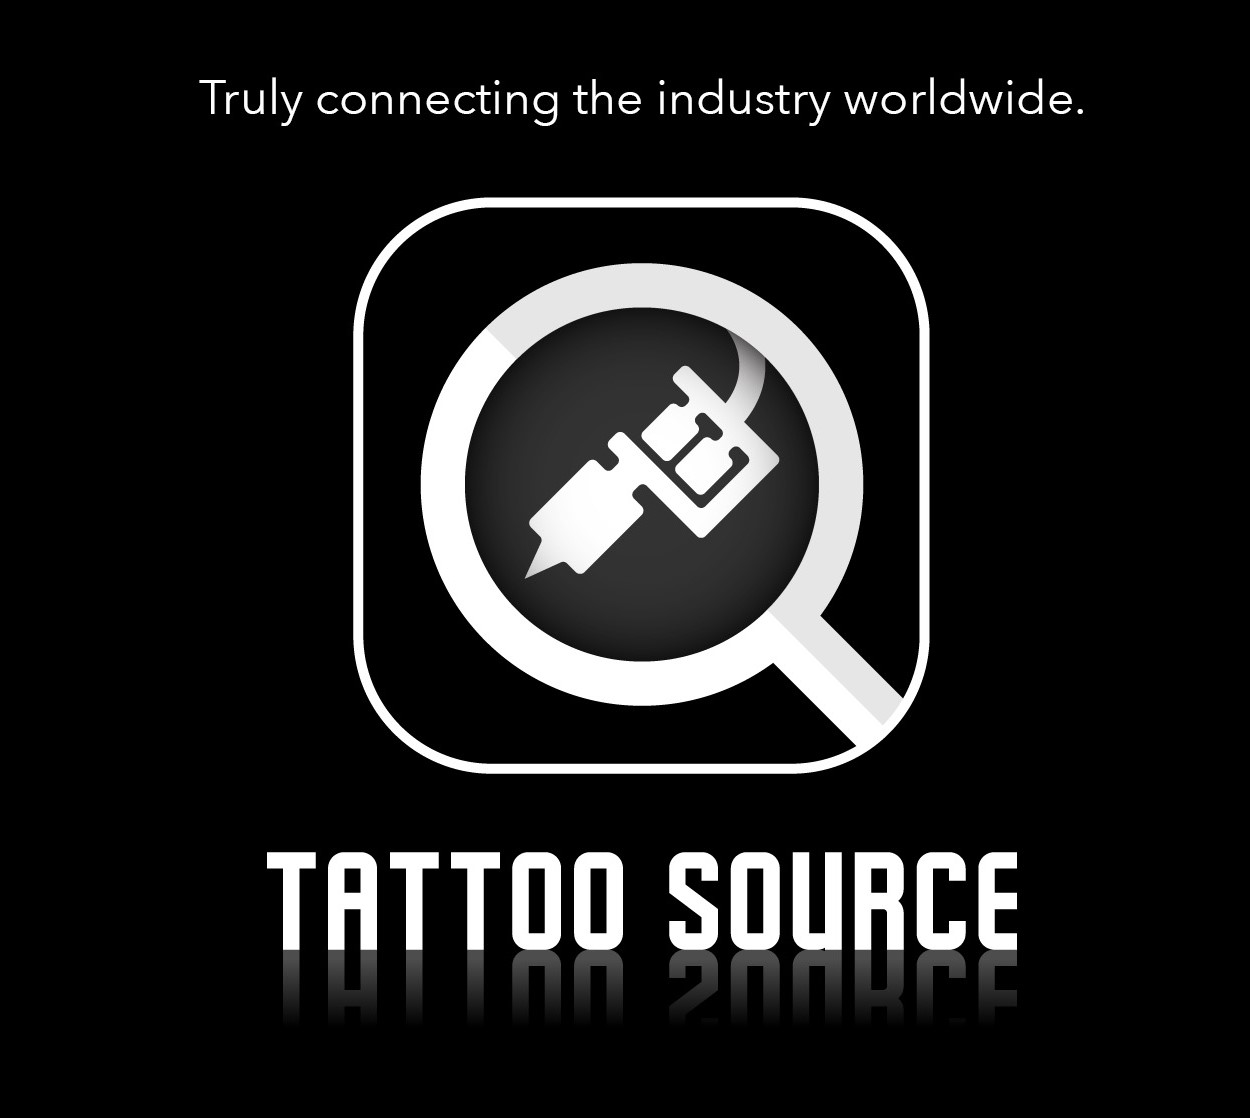 Tattoo Source: Social application for tattoo artists is planning to makes waves in the industry worldwide